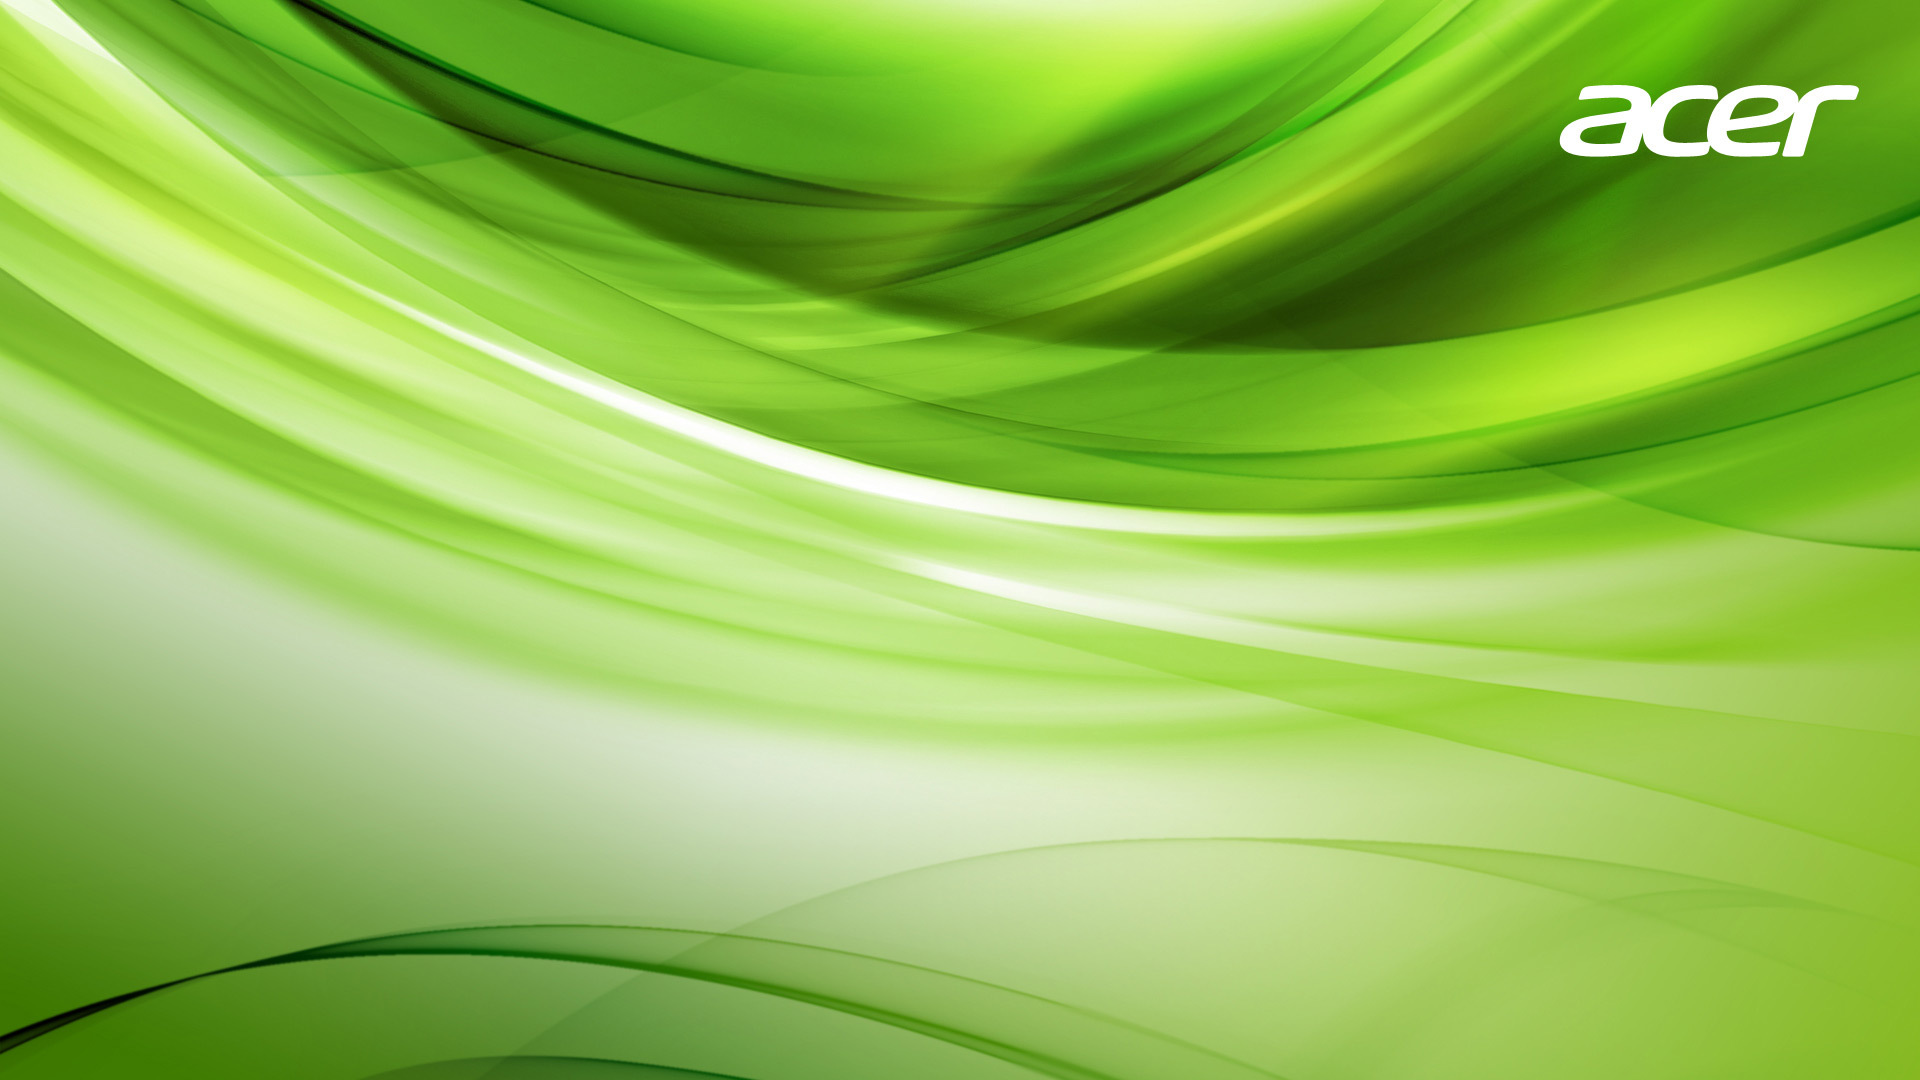 acer desktop wallpaper green | HD Wallpapers